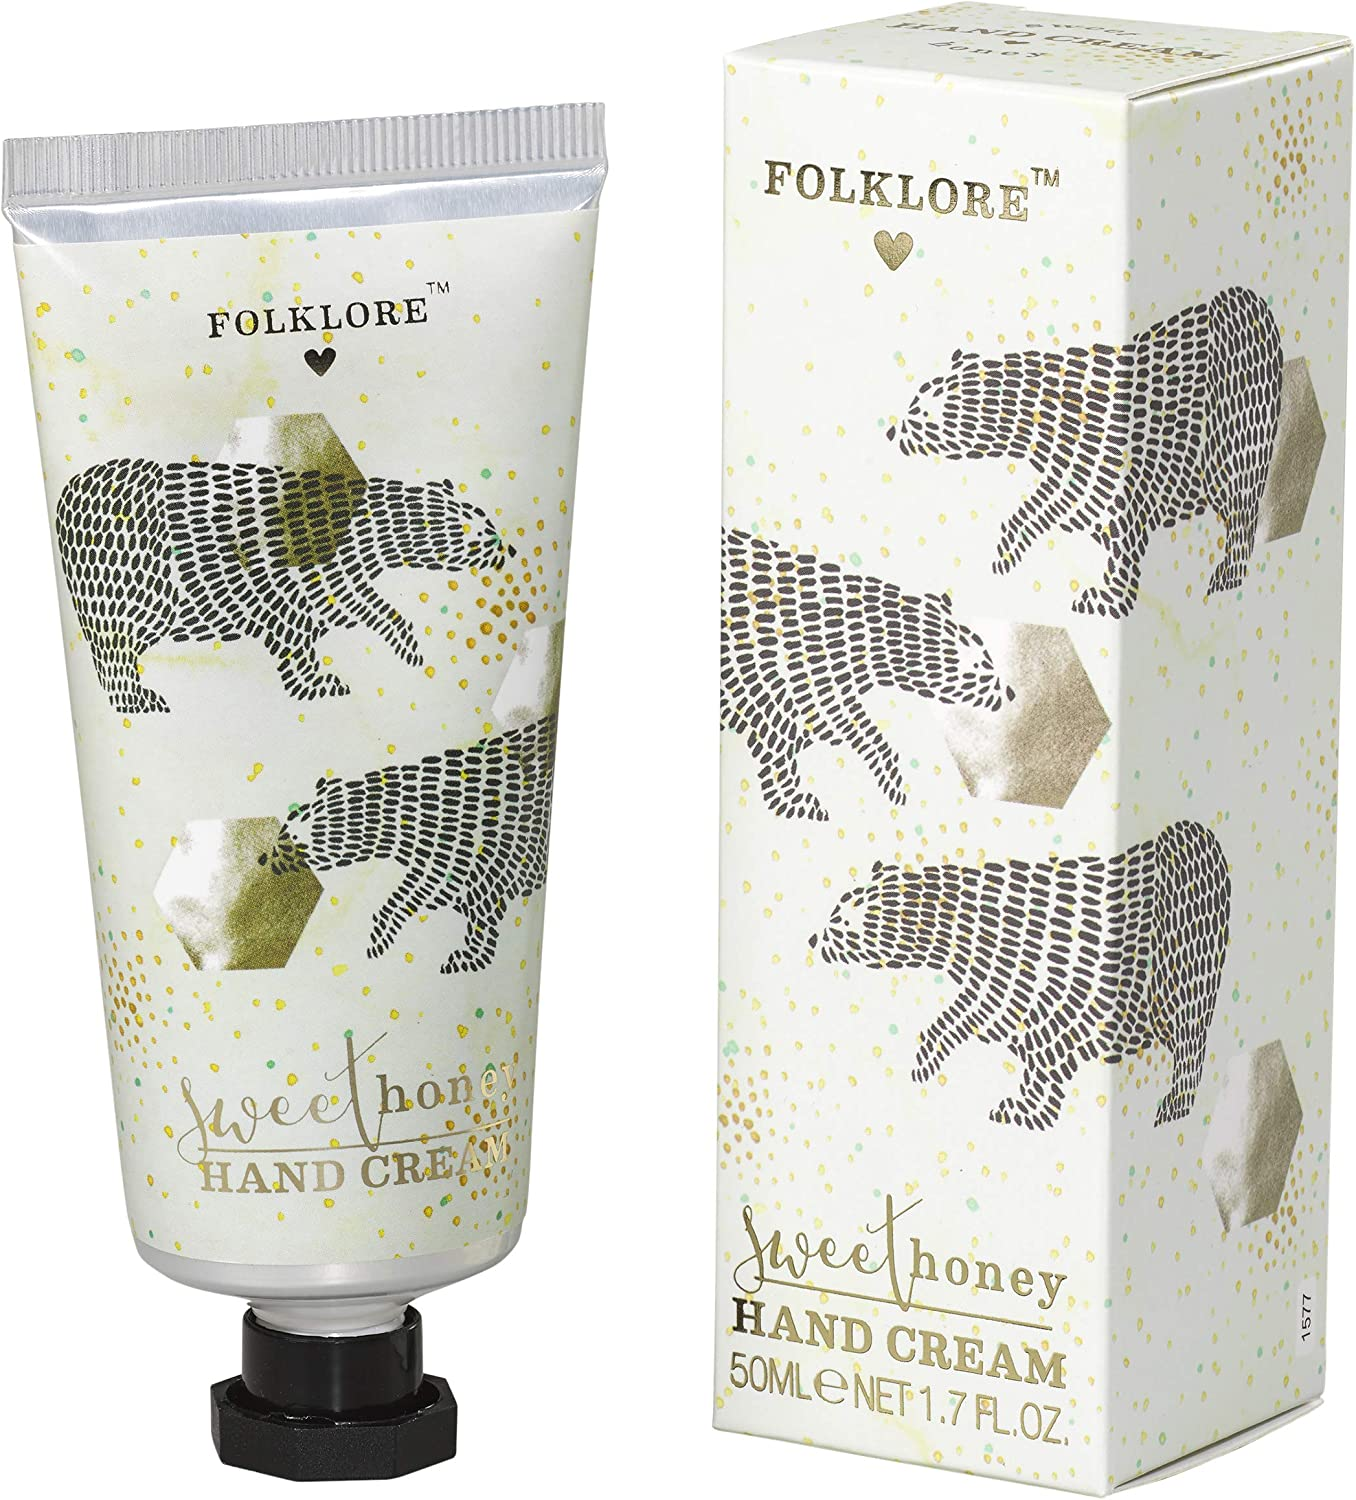 Details about Folklore Hand Cream Sweet Honey 50ml